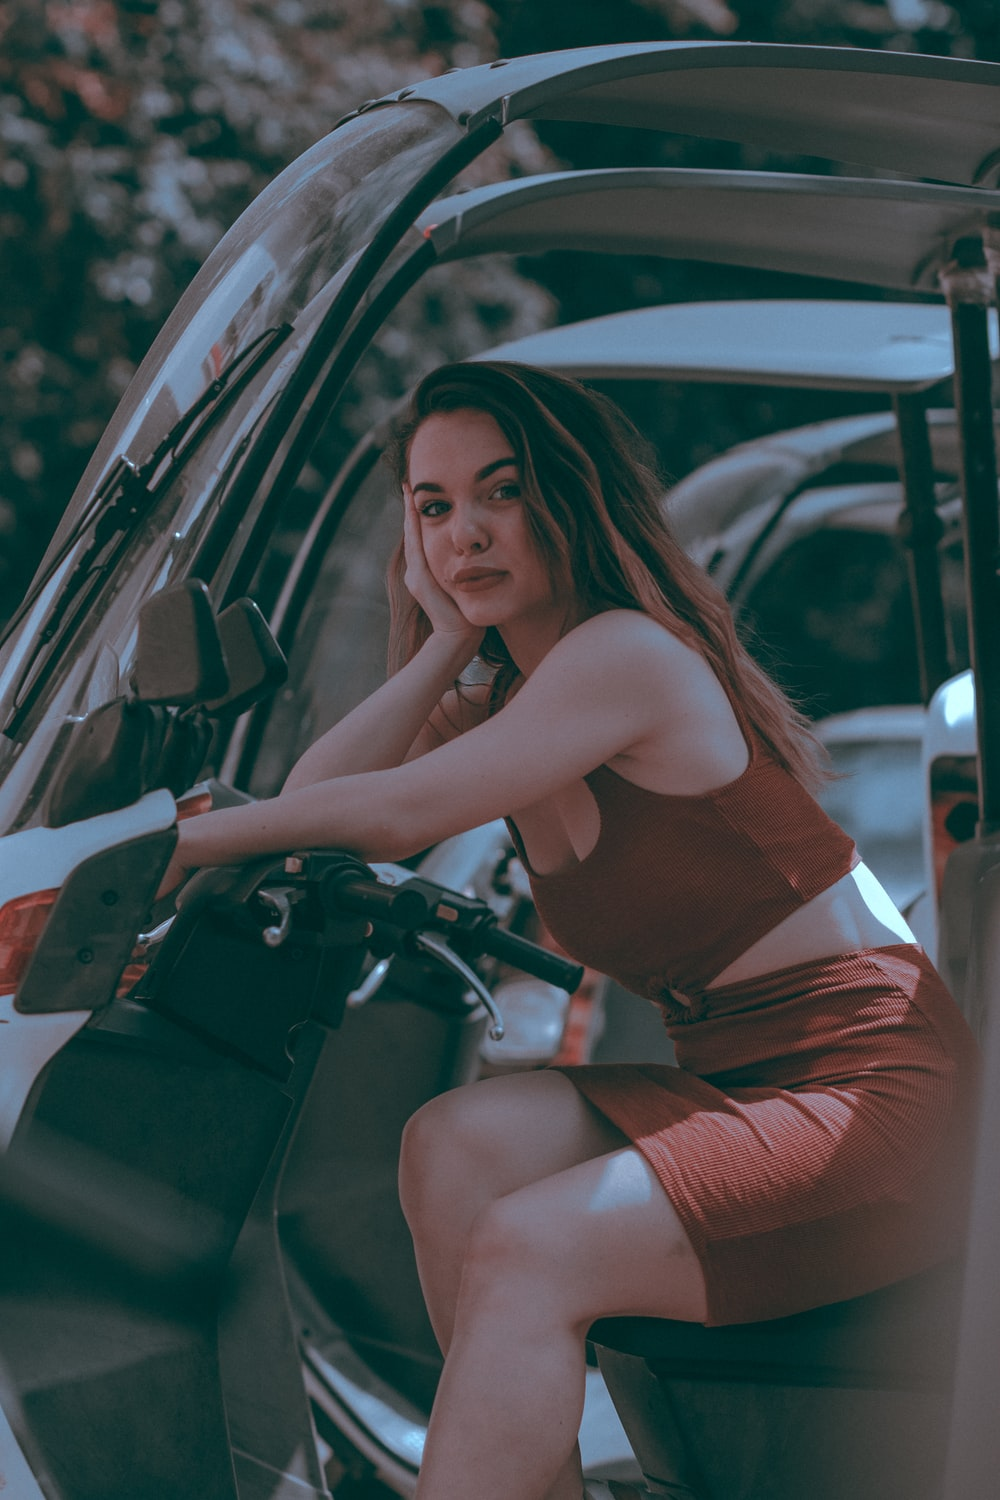 woman in red tank top and red shorts sitting on black car